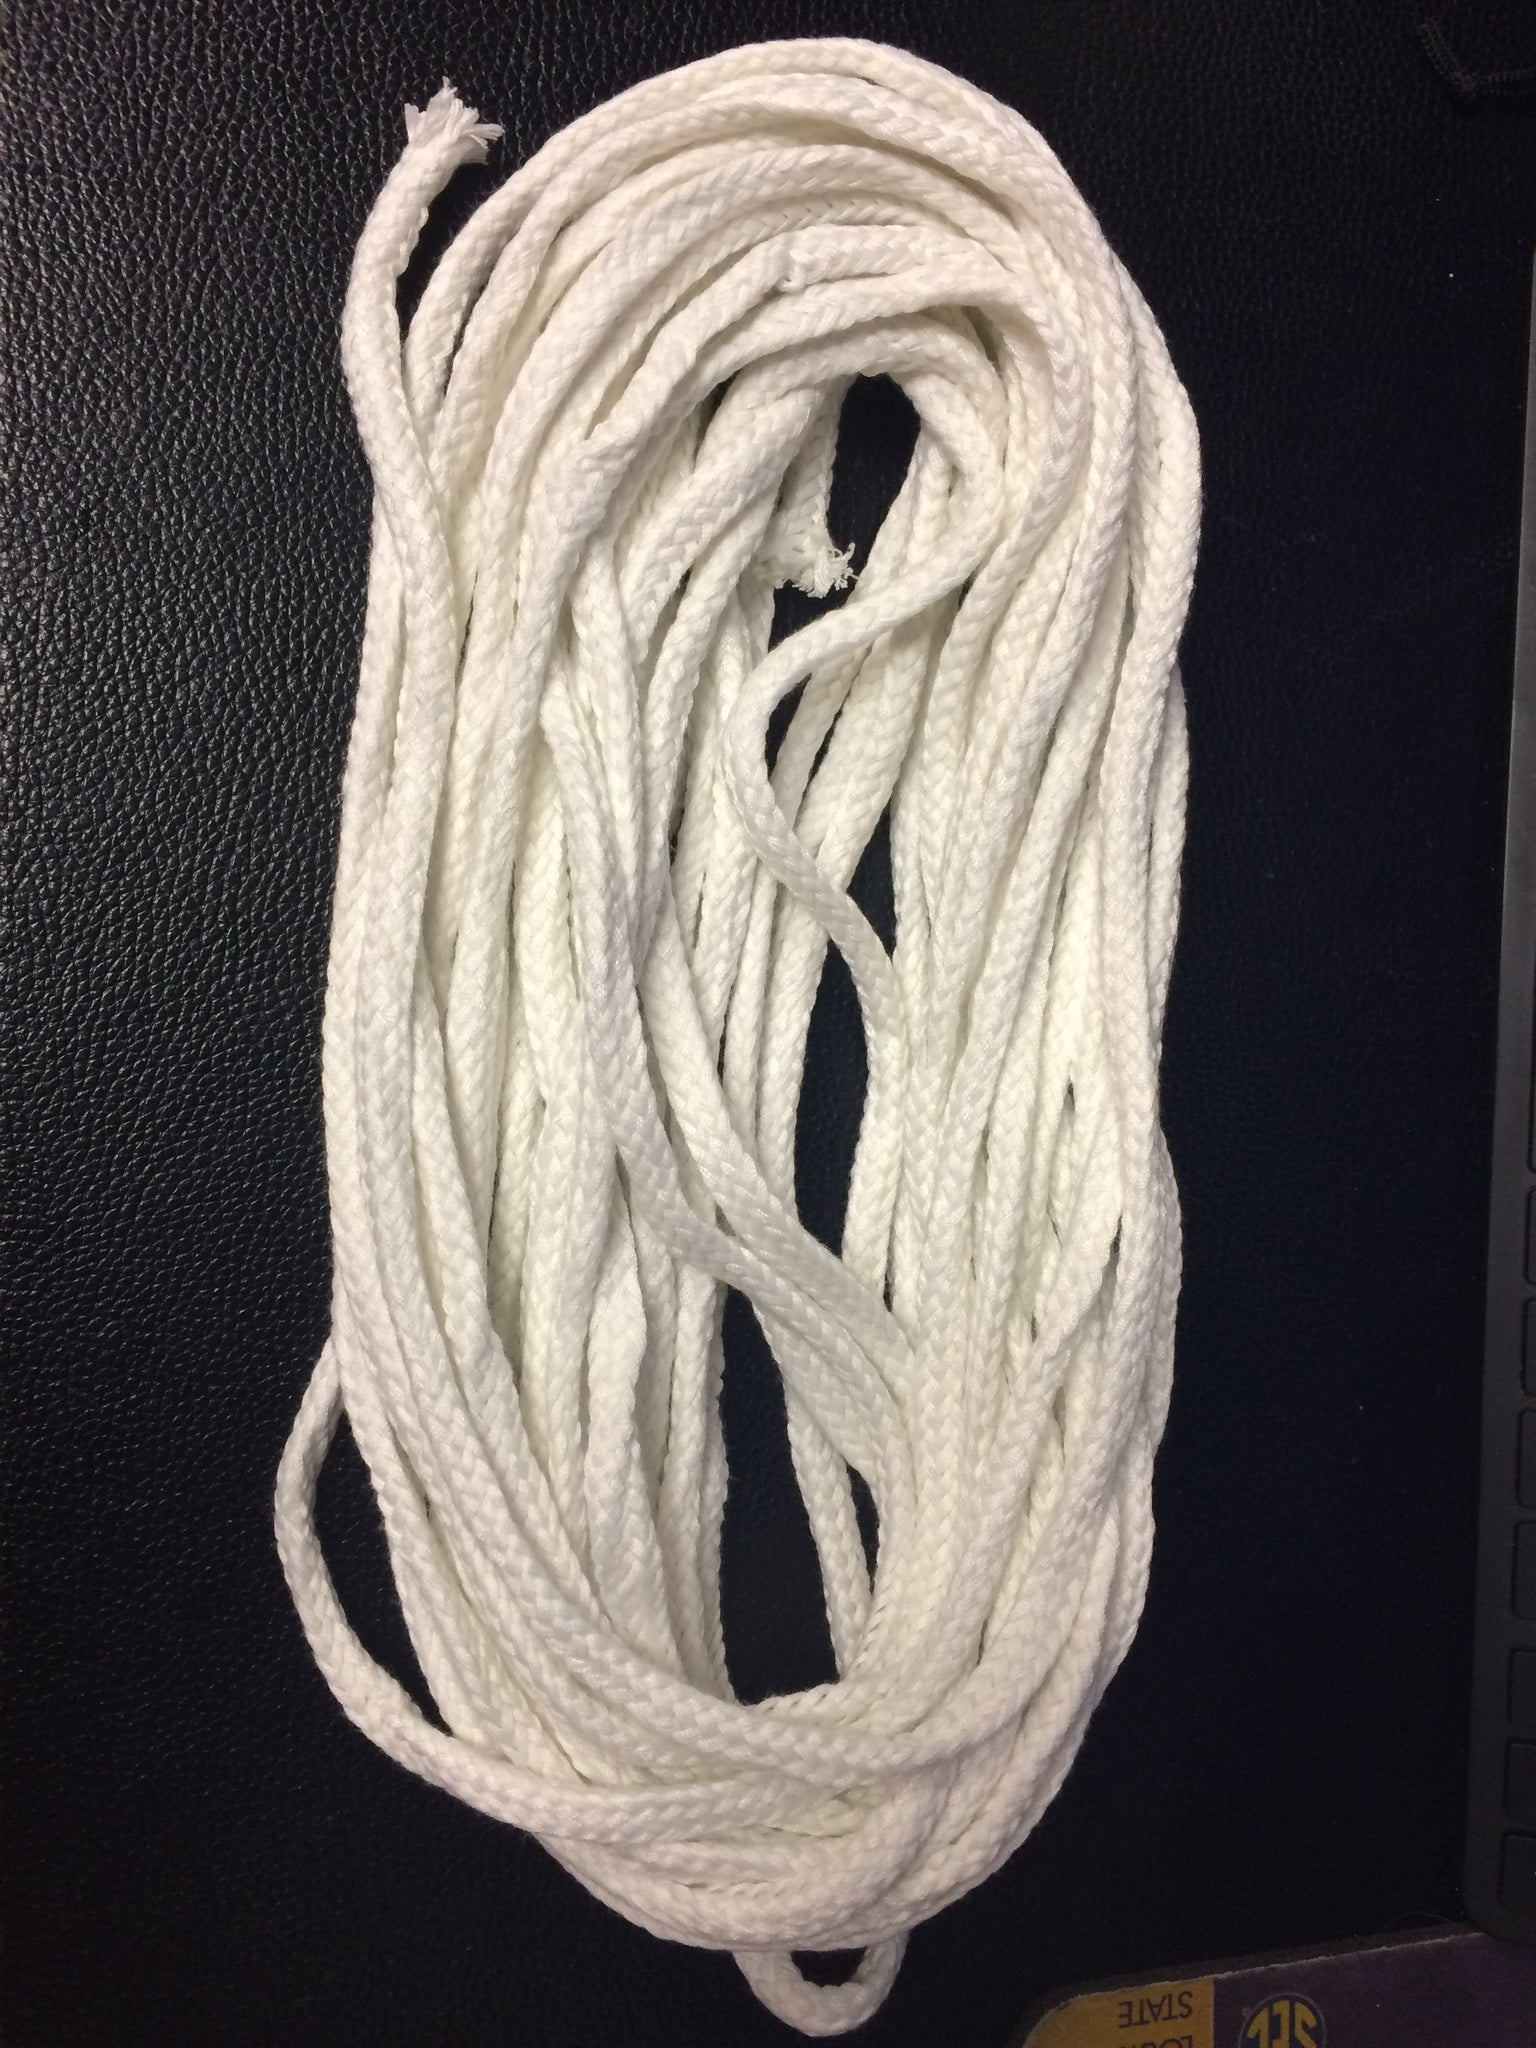 50 Foot Rope (White)